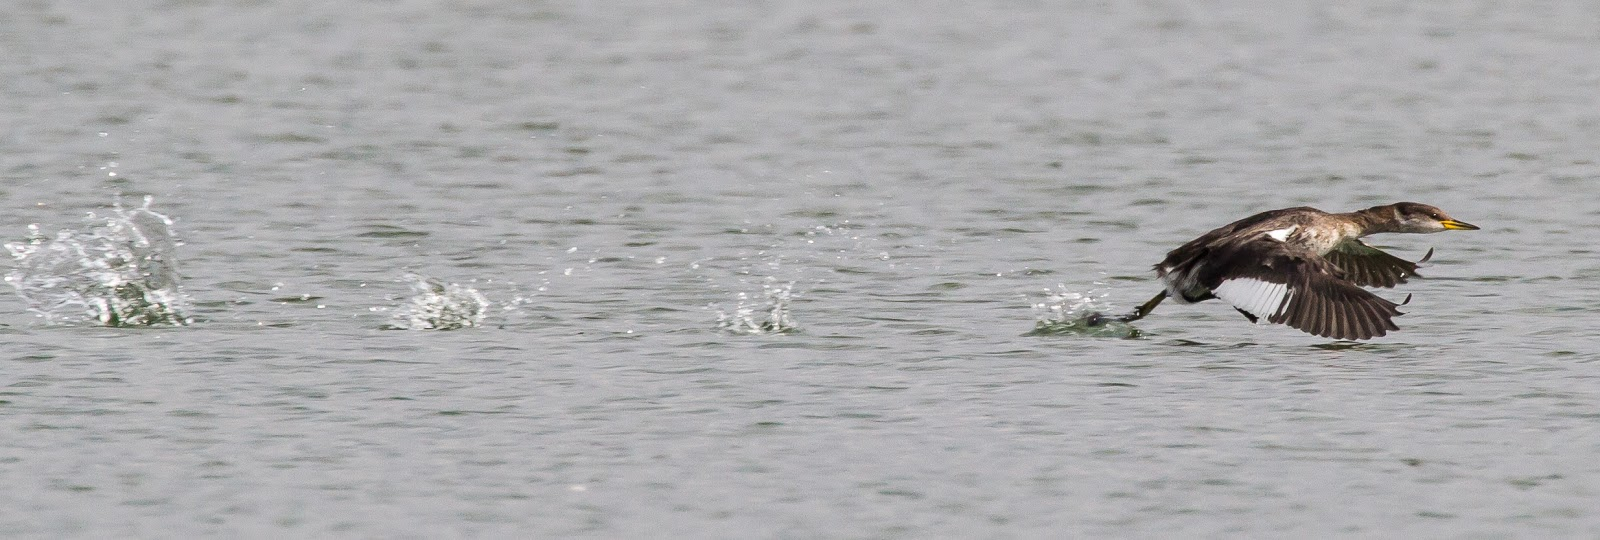 Oxon Birding Blog: Farmoor 28th September